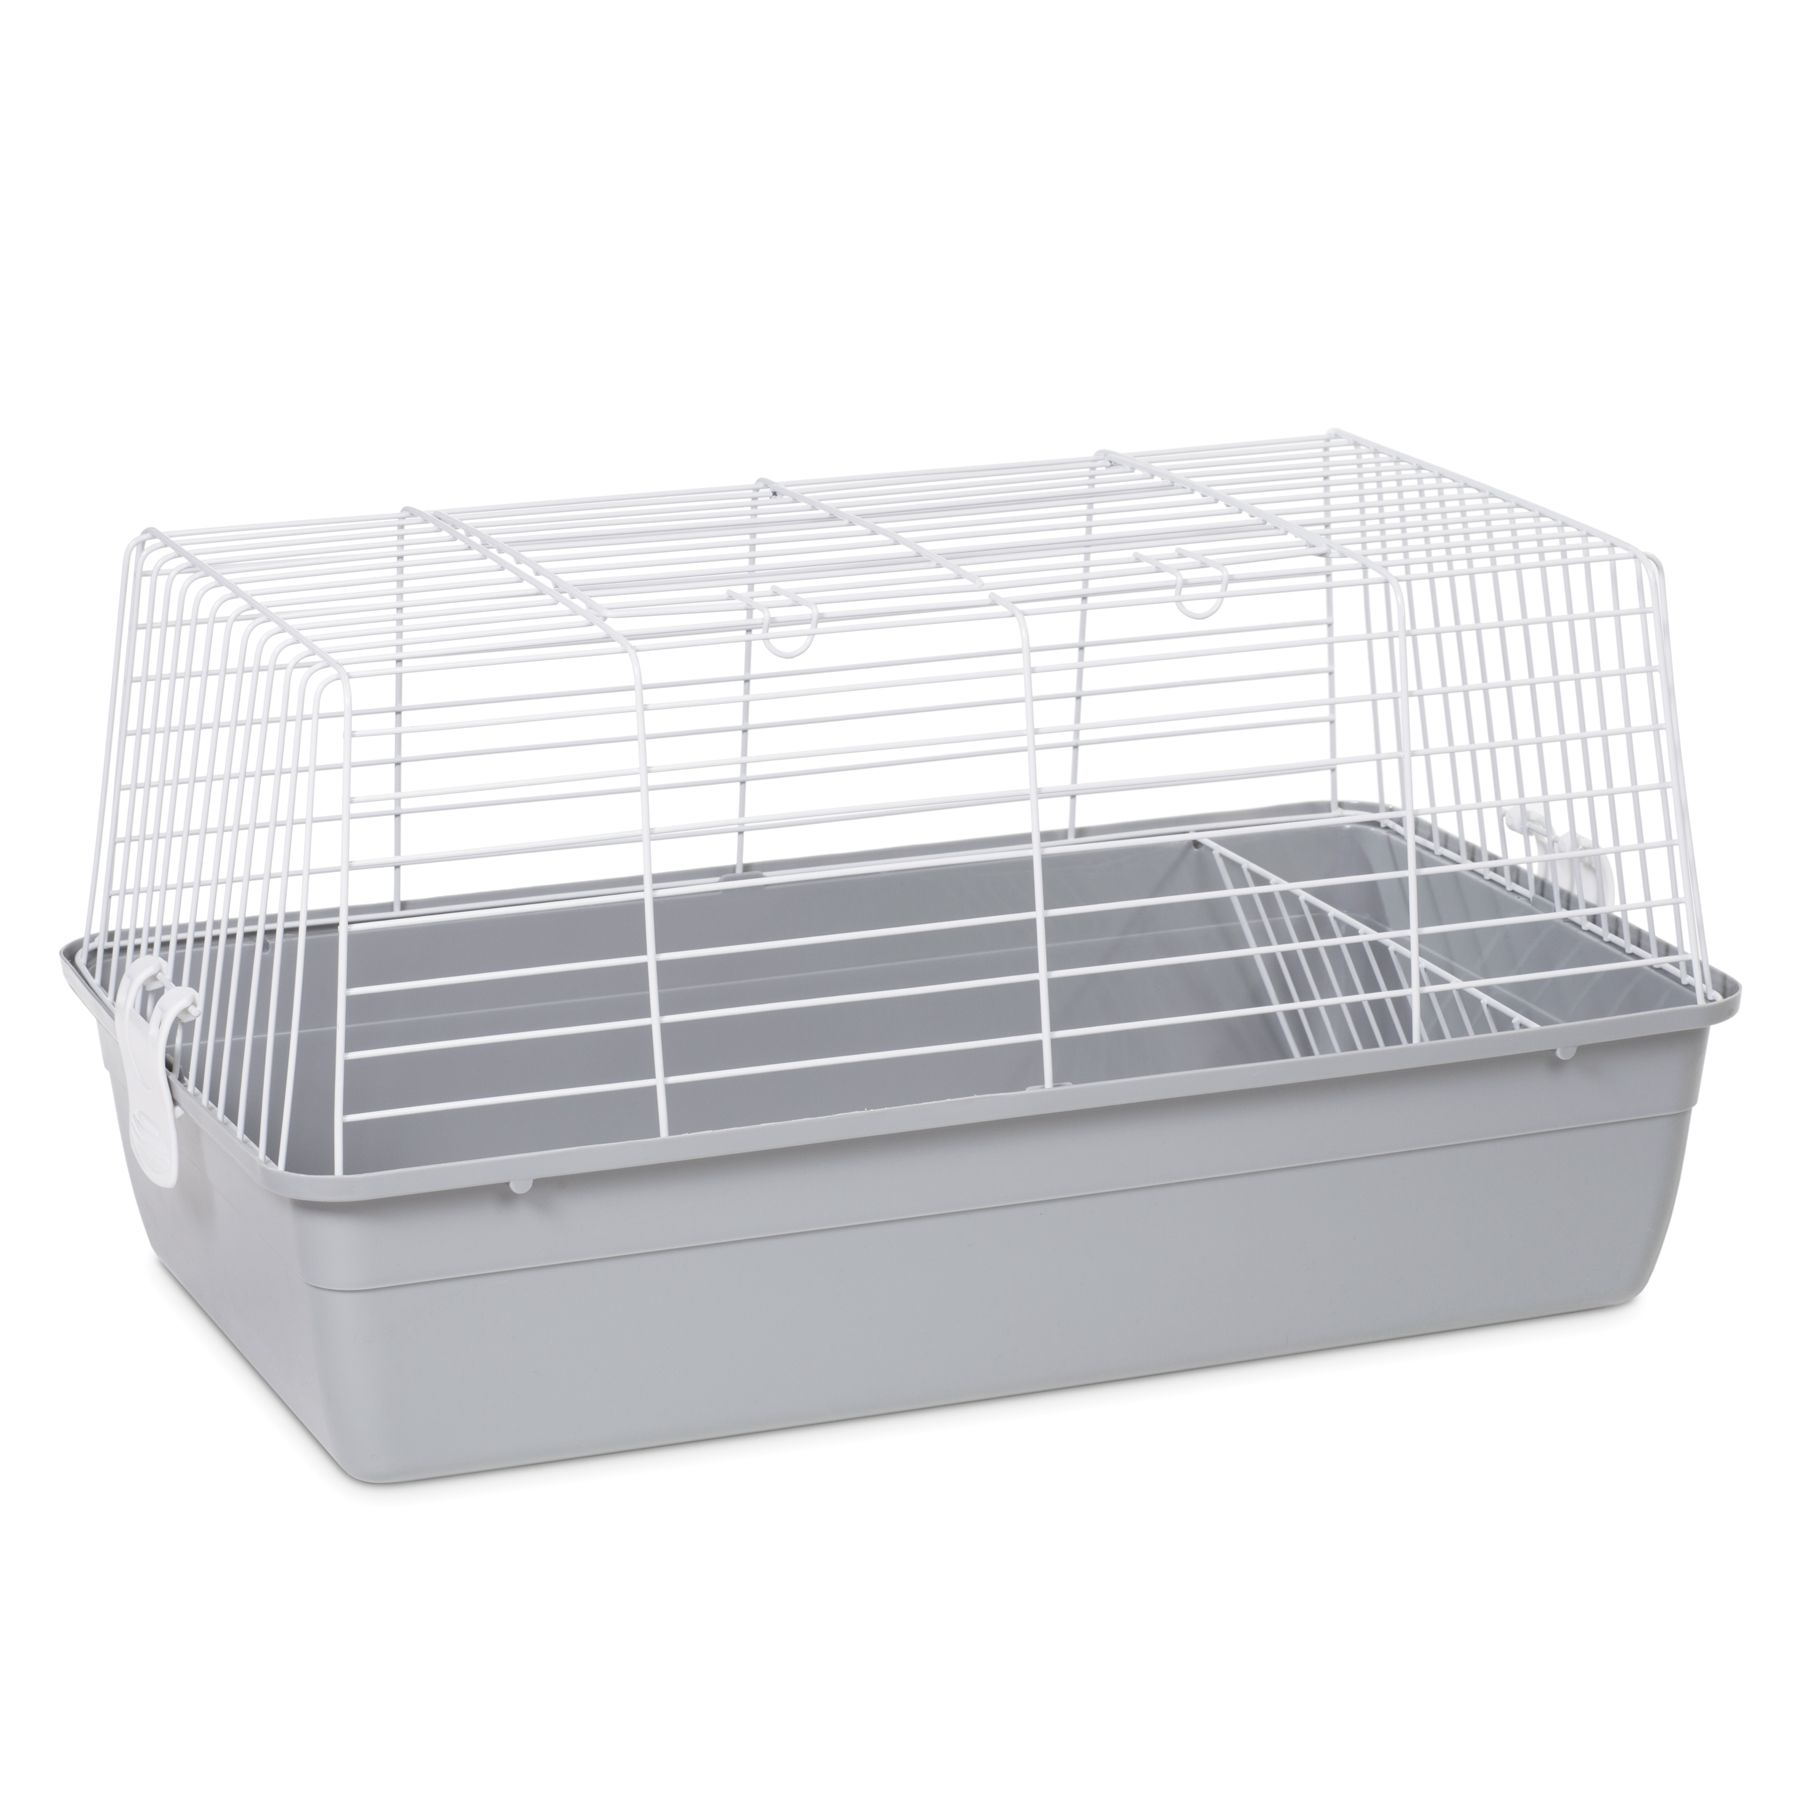 Pet Prevue Products Carina Small Animal Cage size: Small 5250002